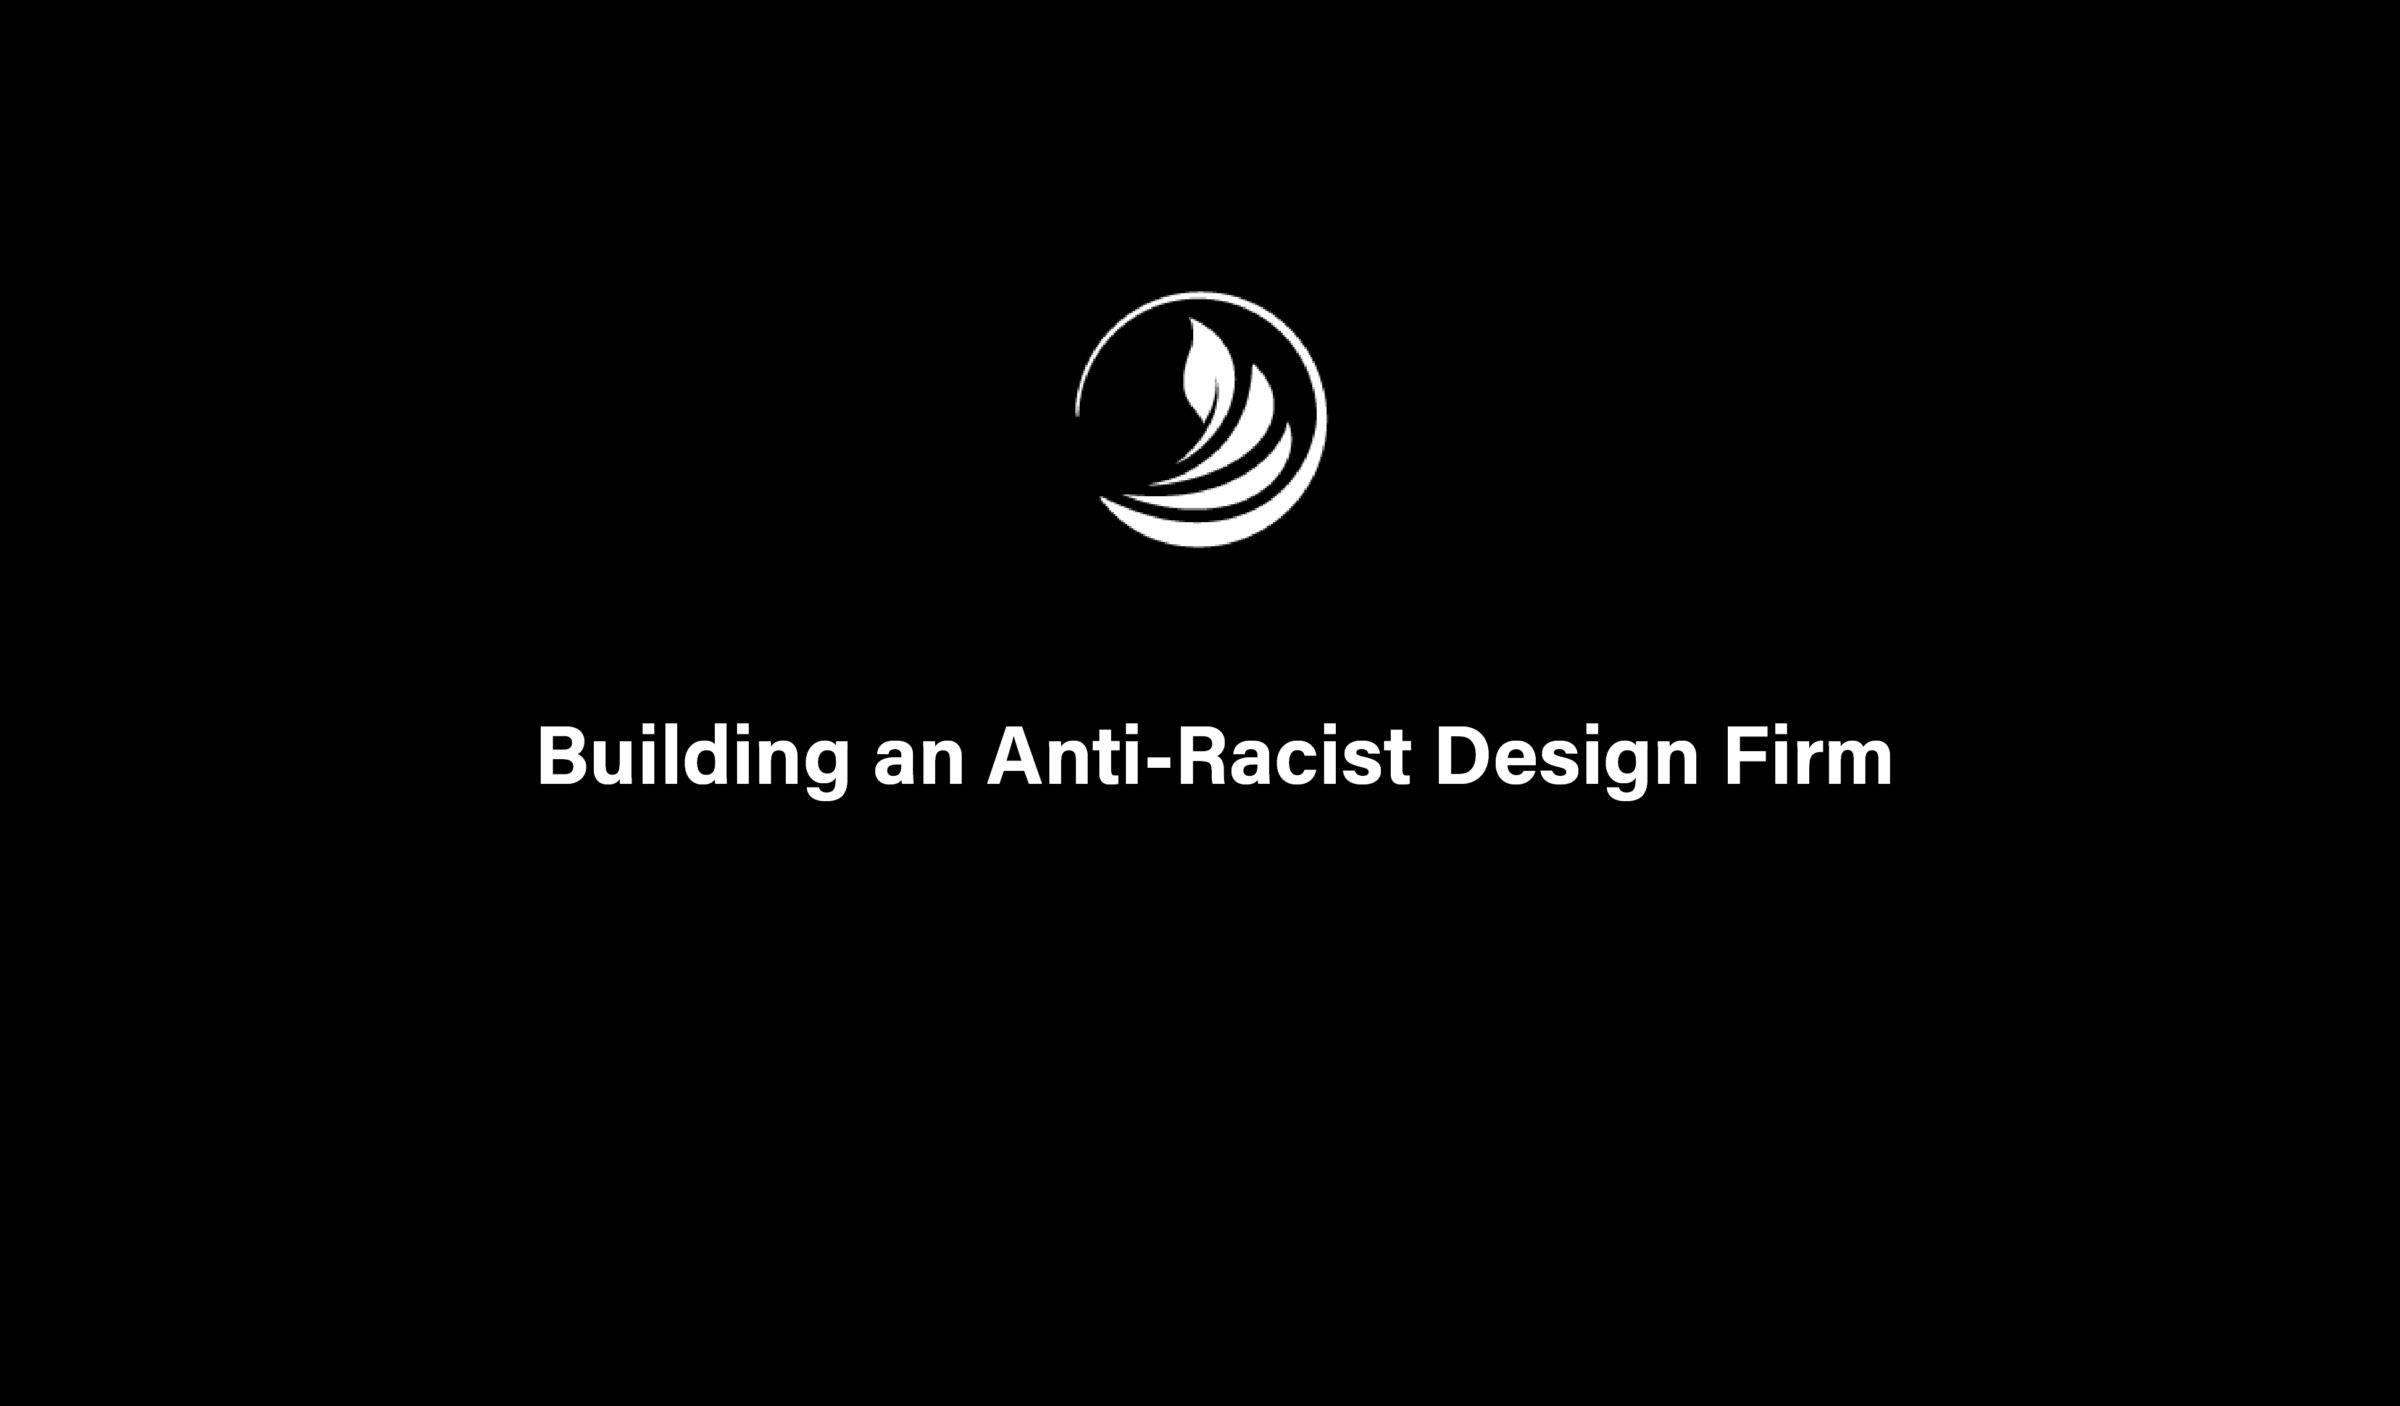 Building An Anti-Racist Design Firm